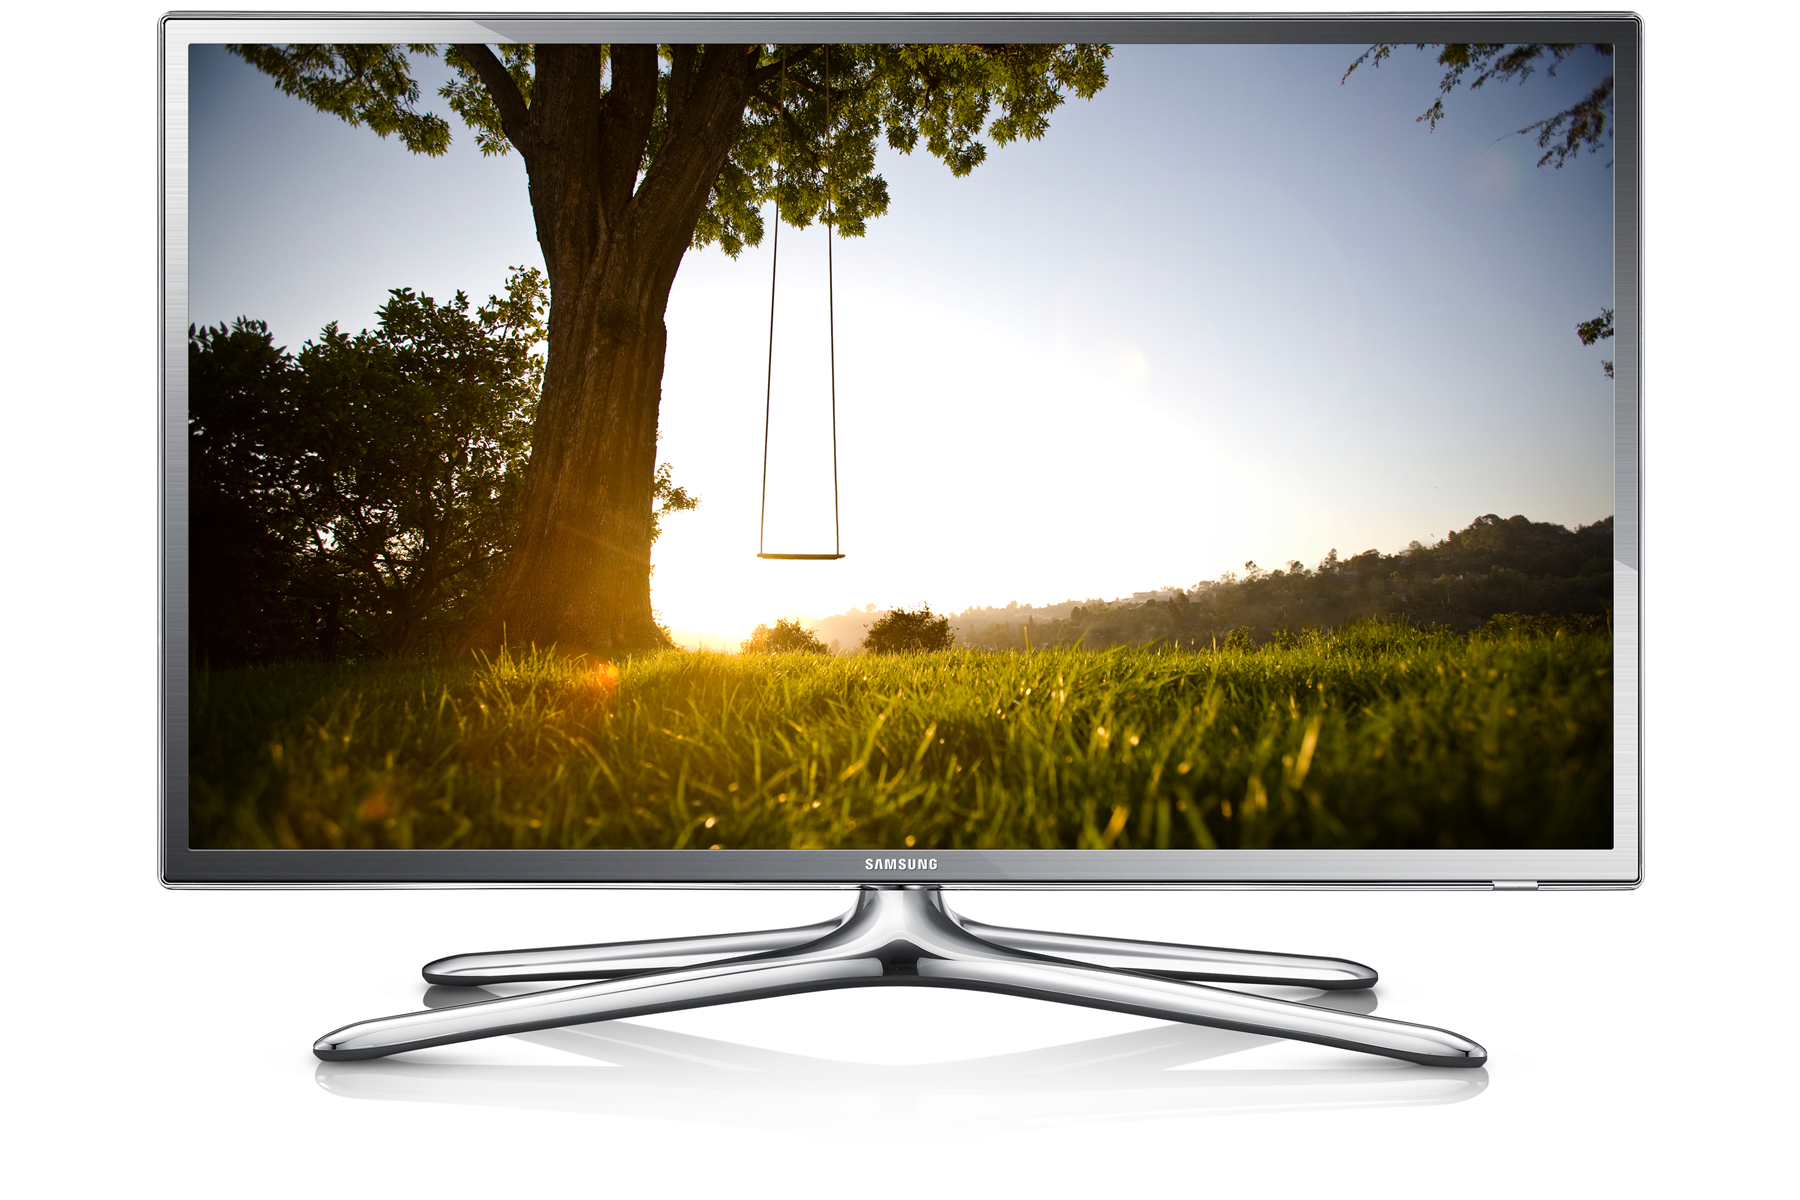 Televizor LED Samsung UE50F6200 Full HD Smart TV